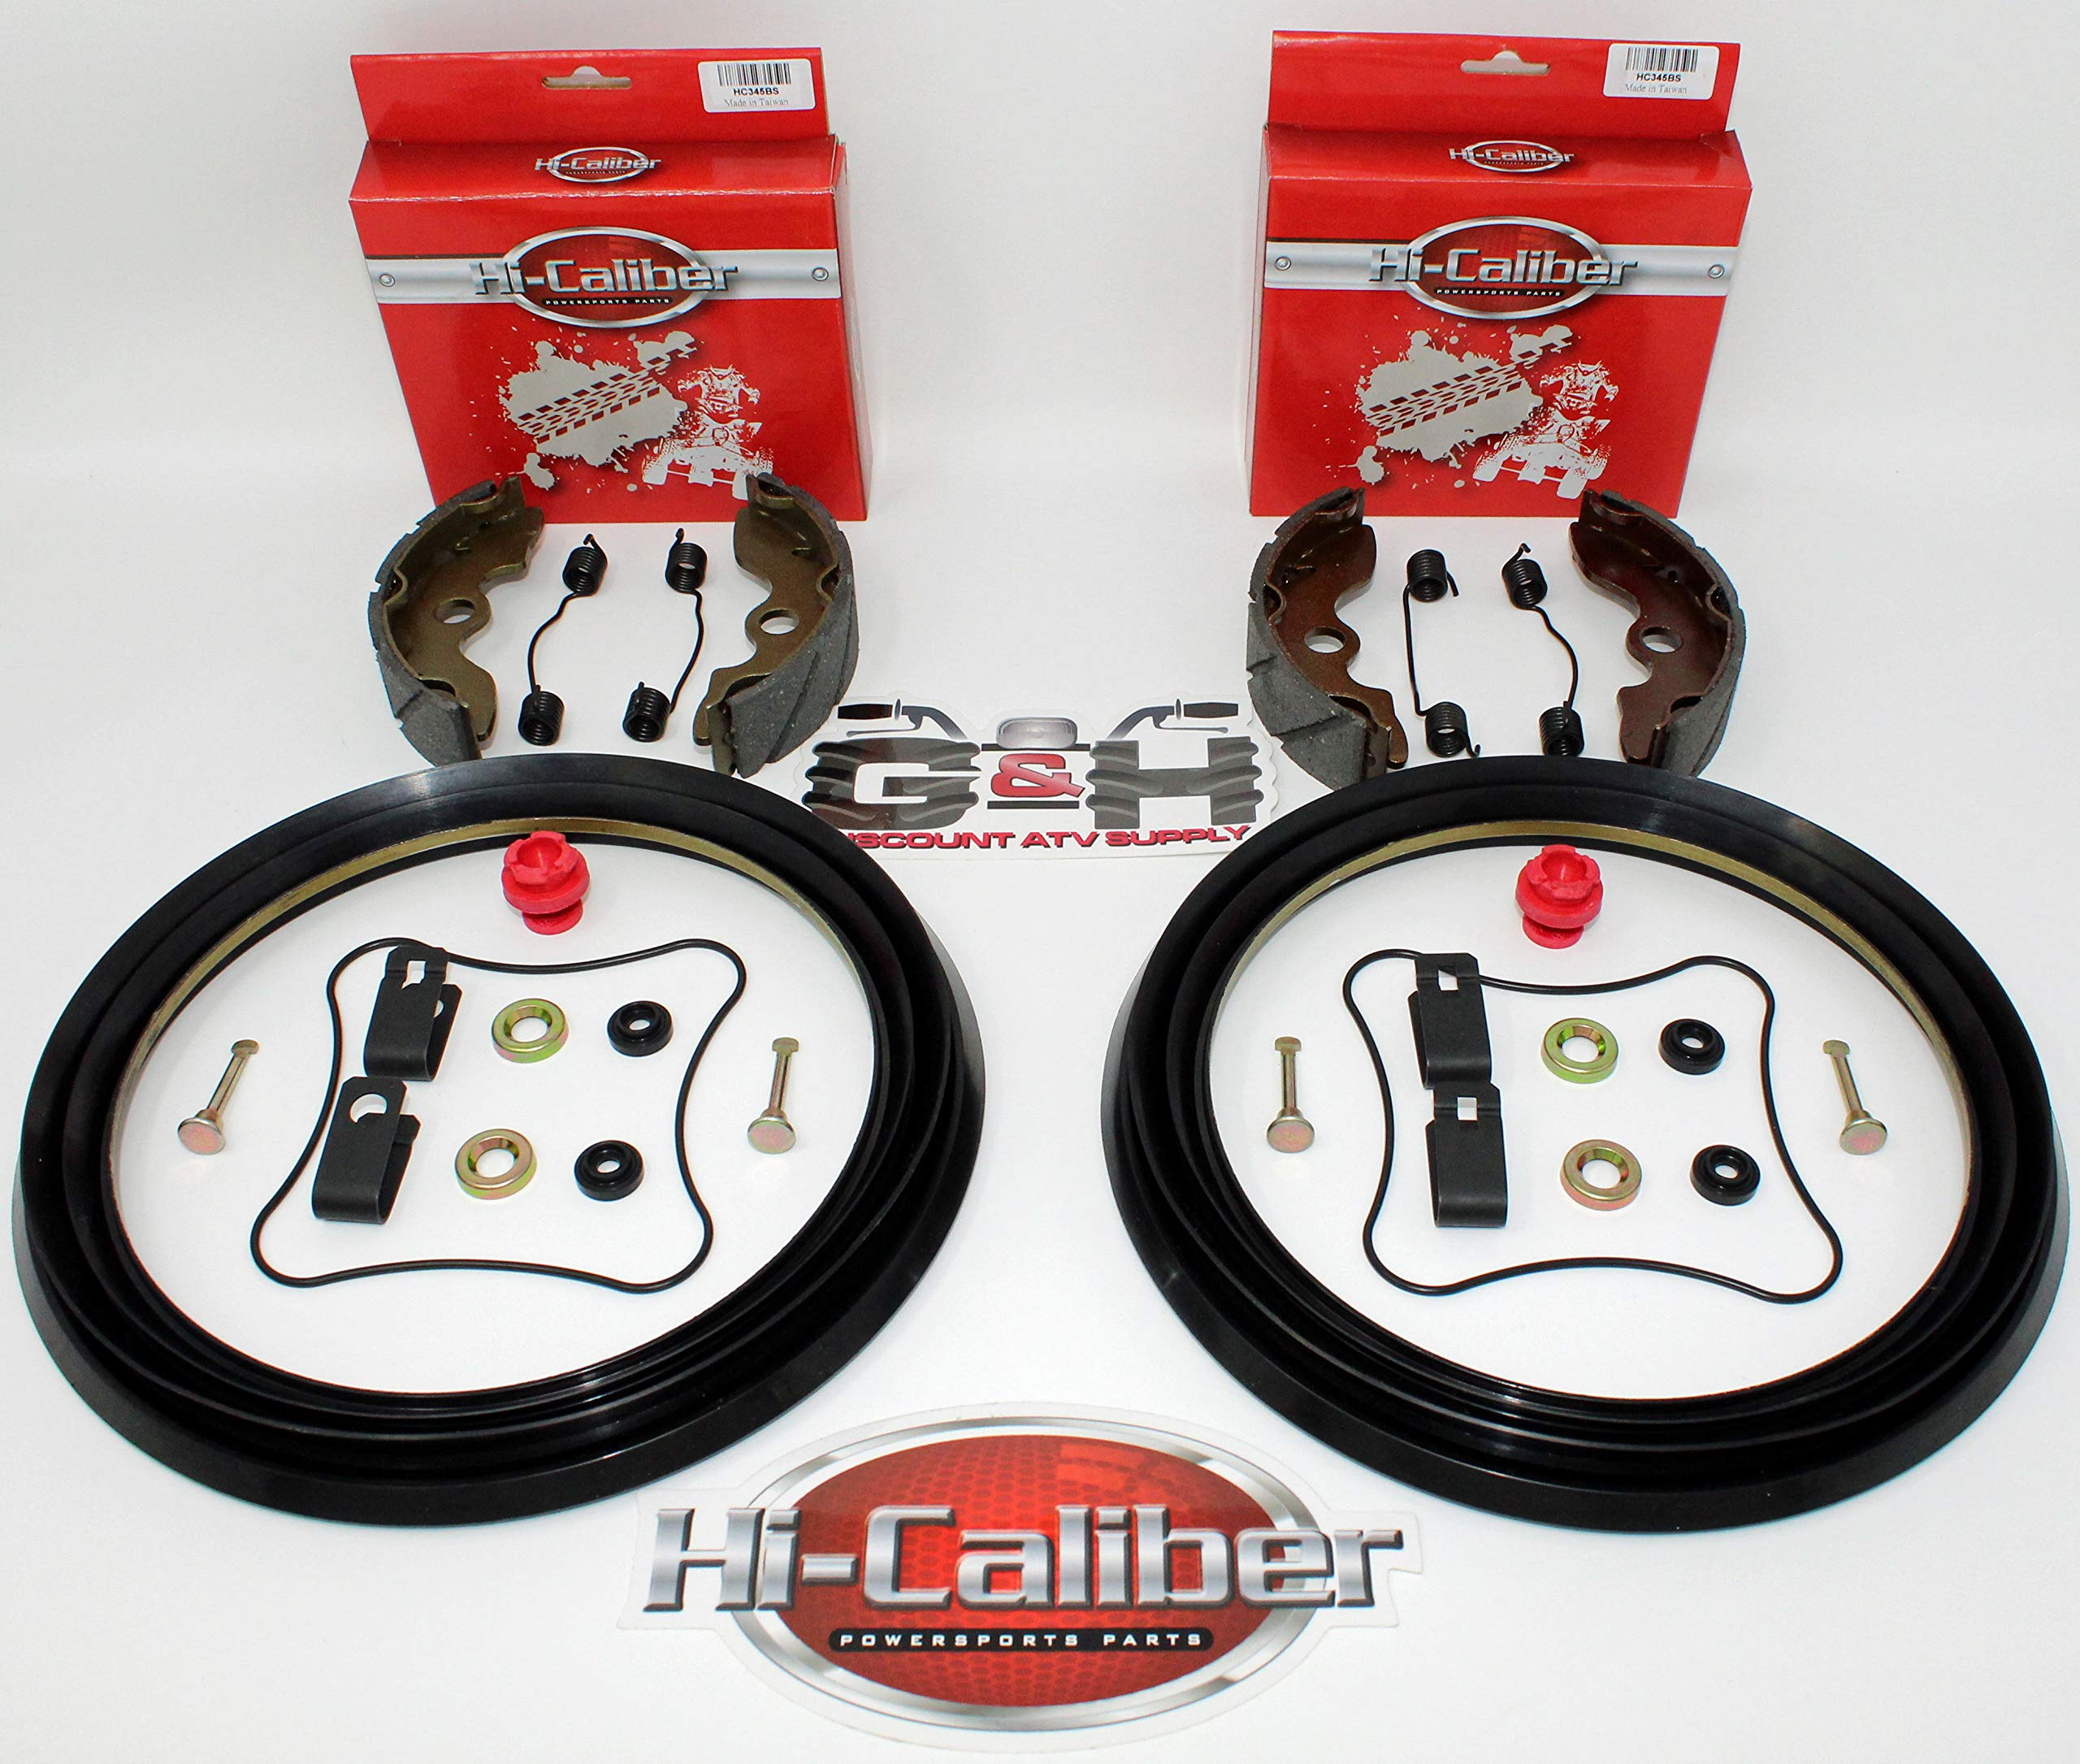 Full FRONT Brake Rebuild KIT (Includes Water Grooved Shoes, Springs & Hardware) for 1993-2000 Honda TRX 300 2x4 ONLY